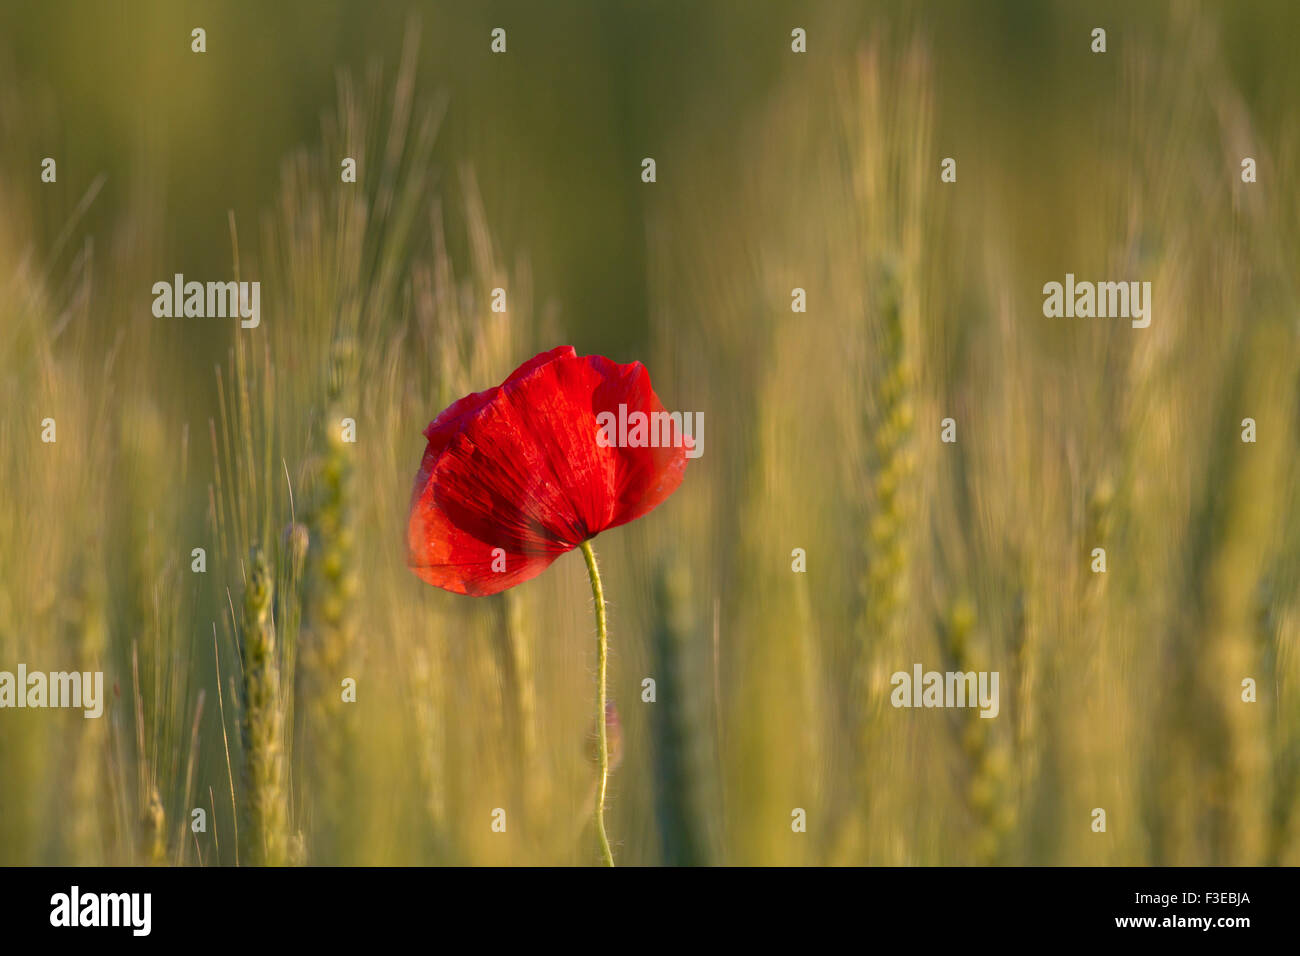 Common poppy / red poppy (Papaver rhoeas) flowering in wheat field - Stock Image